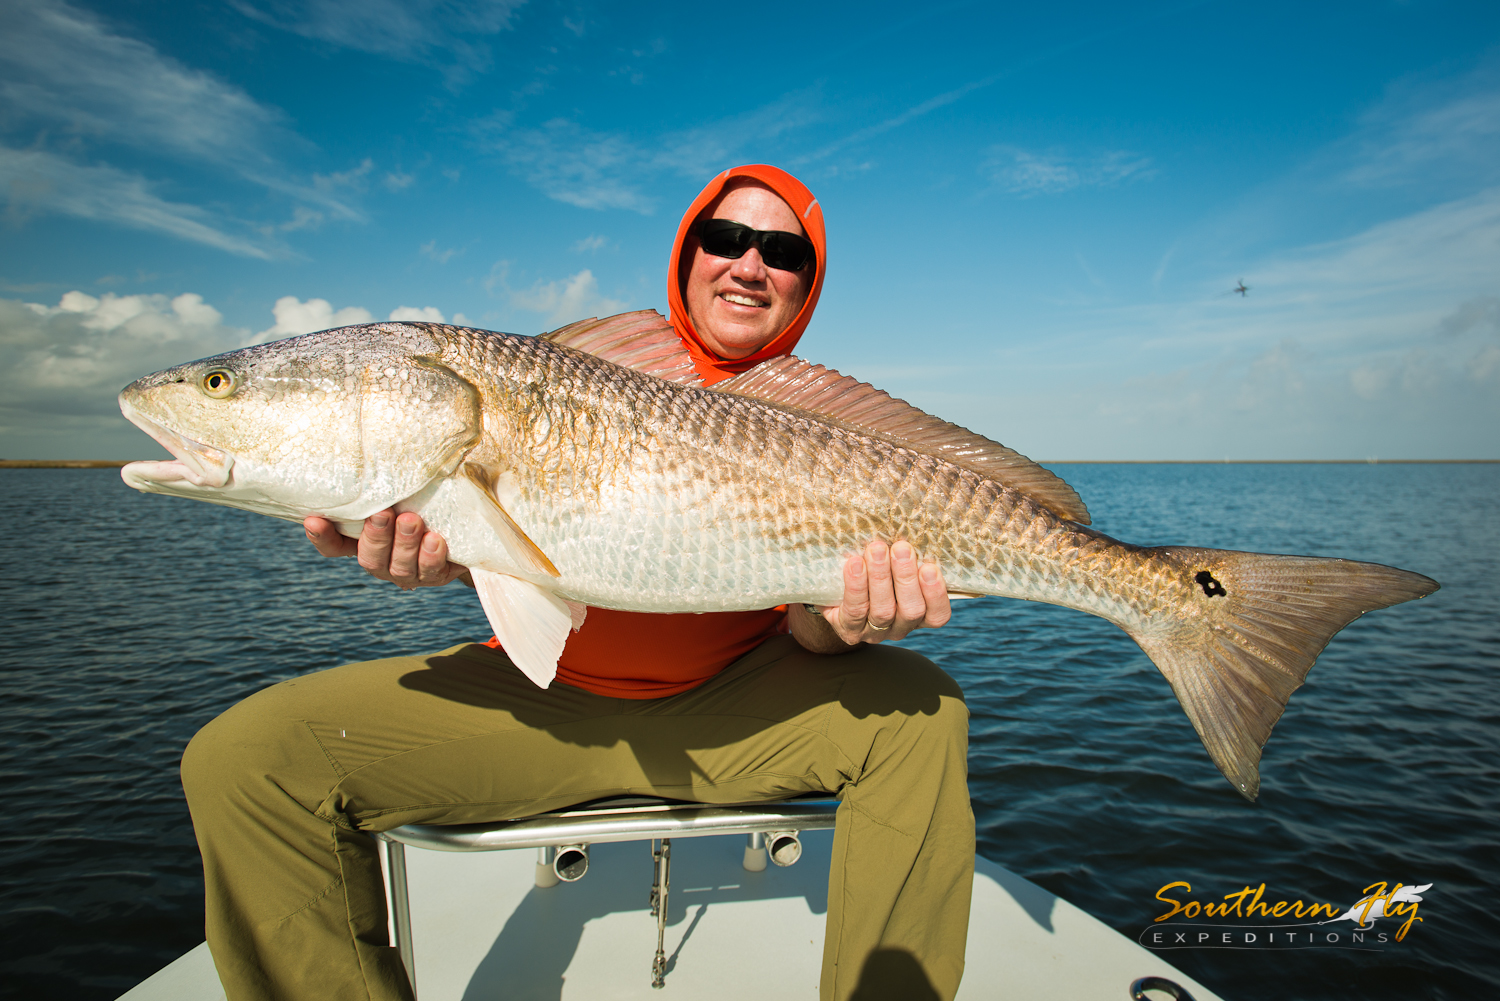 New Orleans Fly Fishing in Venice Louisiana with Southern Fly Expeditions LLC